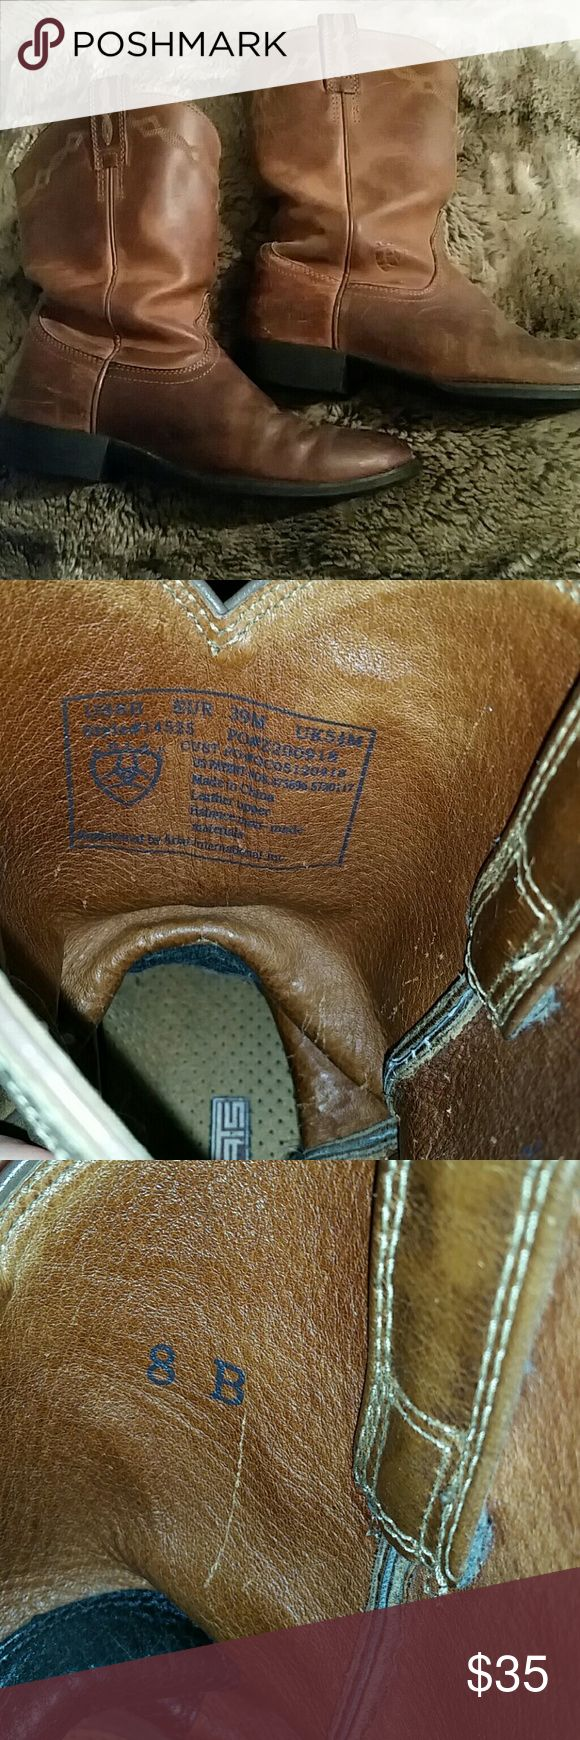 Ariat work boots Brown Ariat work boots. Worn but still have a lot of life left. Bottoms in great condition. Size says 8B...I wear 8 or 8.5 women's shoes. Great thread detail. Ariat Shoes Combat & Moto Boots